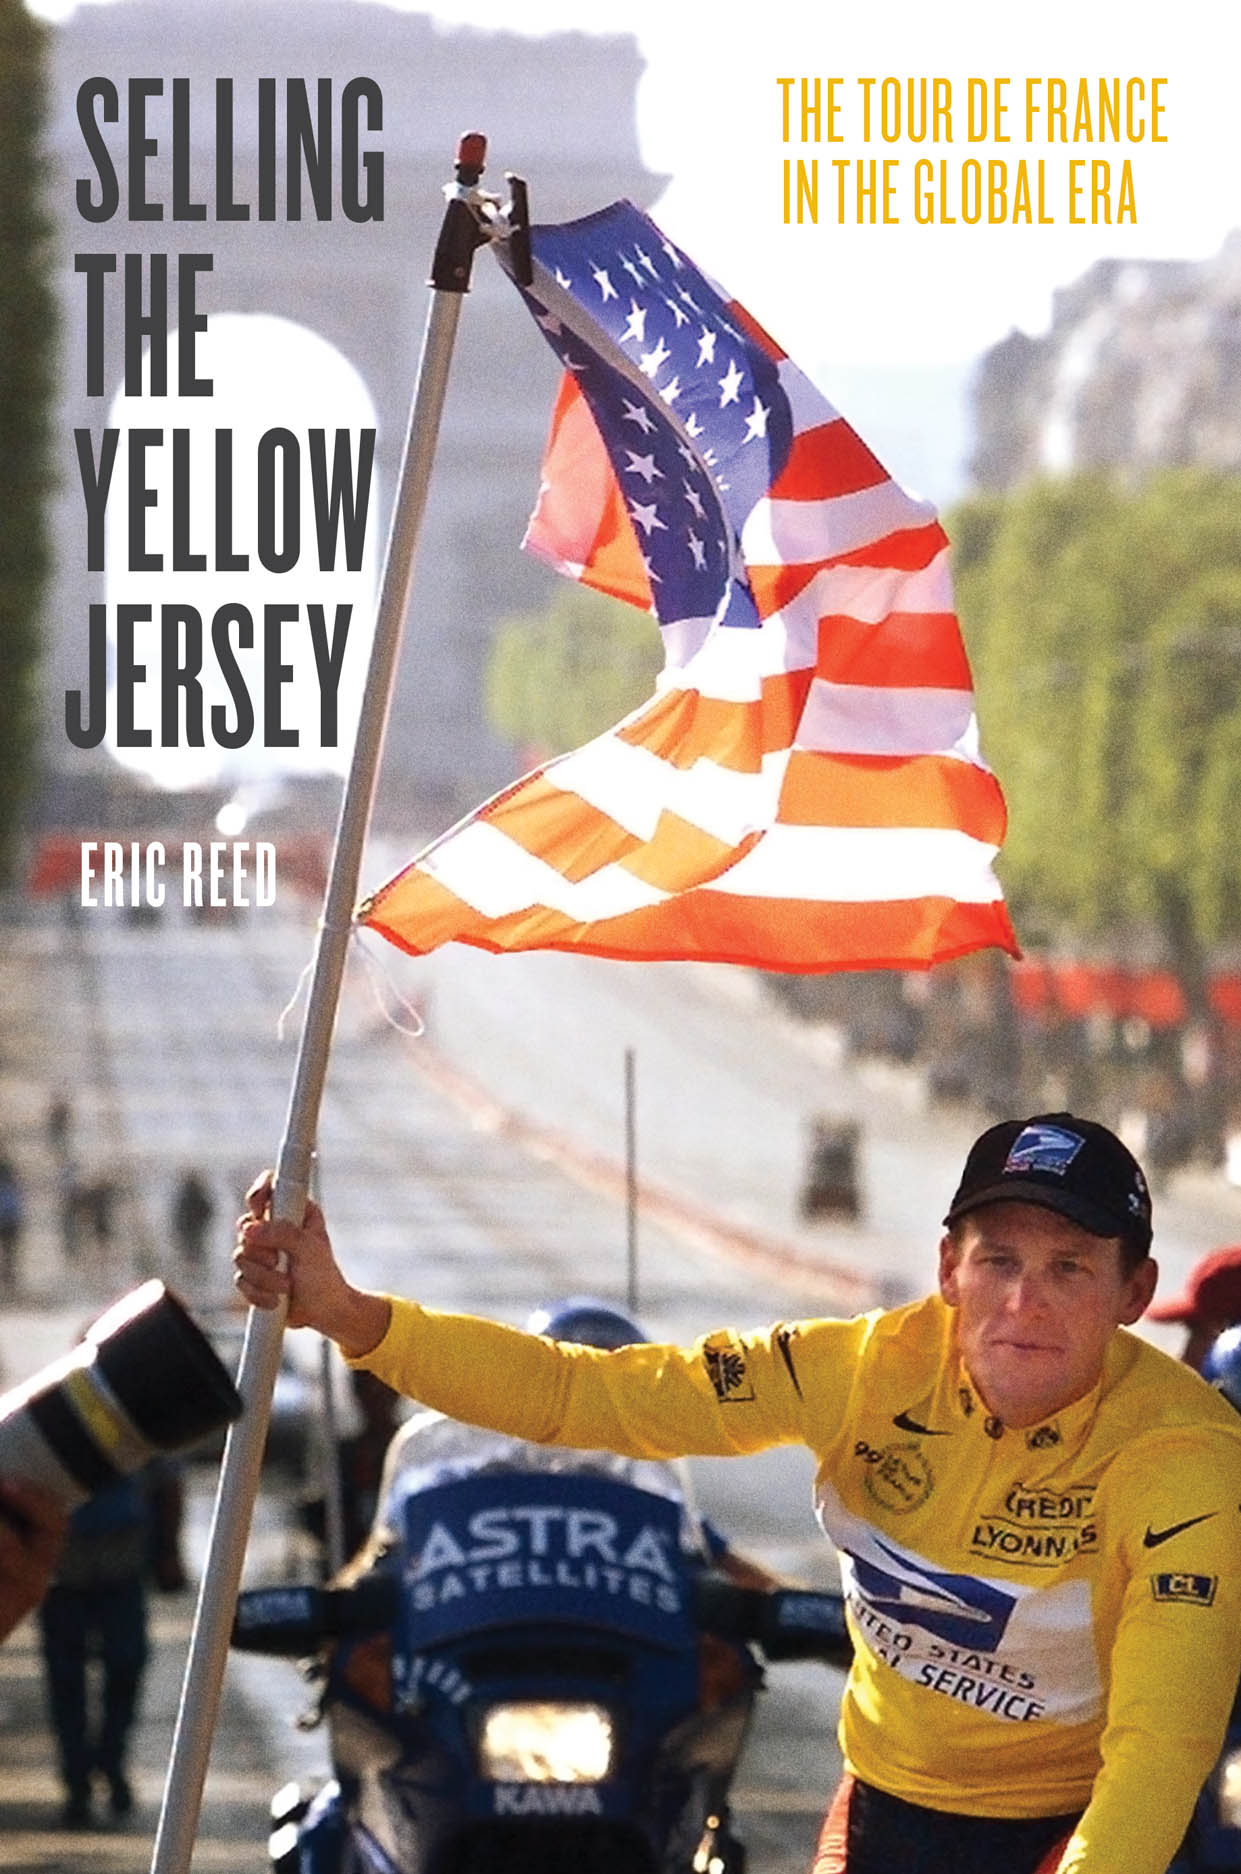 Selling the Yellow Jersey: The Tour de France in the Global Era